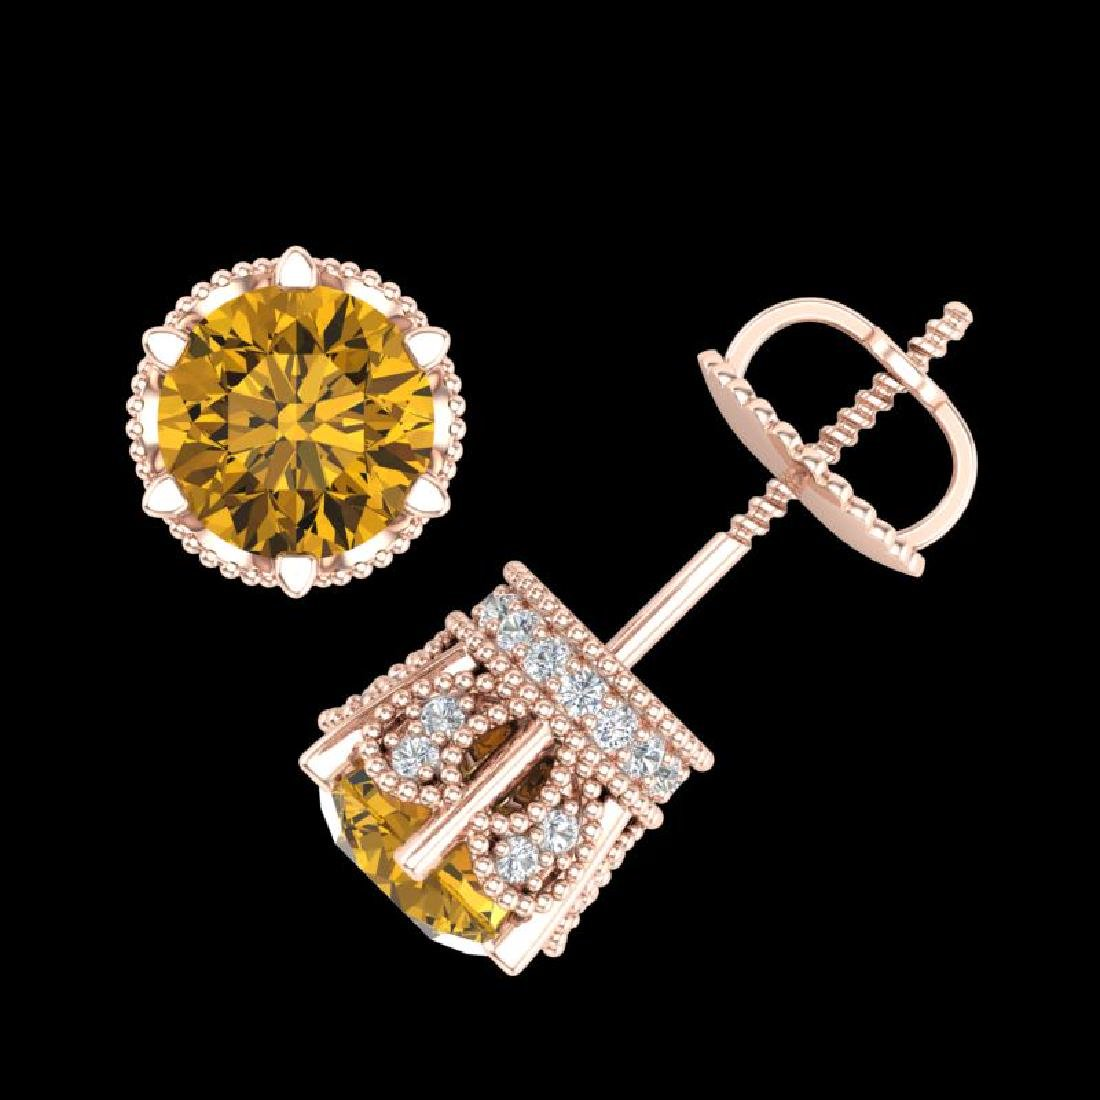 2.04 CTW Intense Fancy Yellow Diamond Art Deco Stud - 3